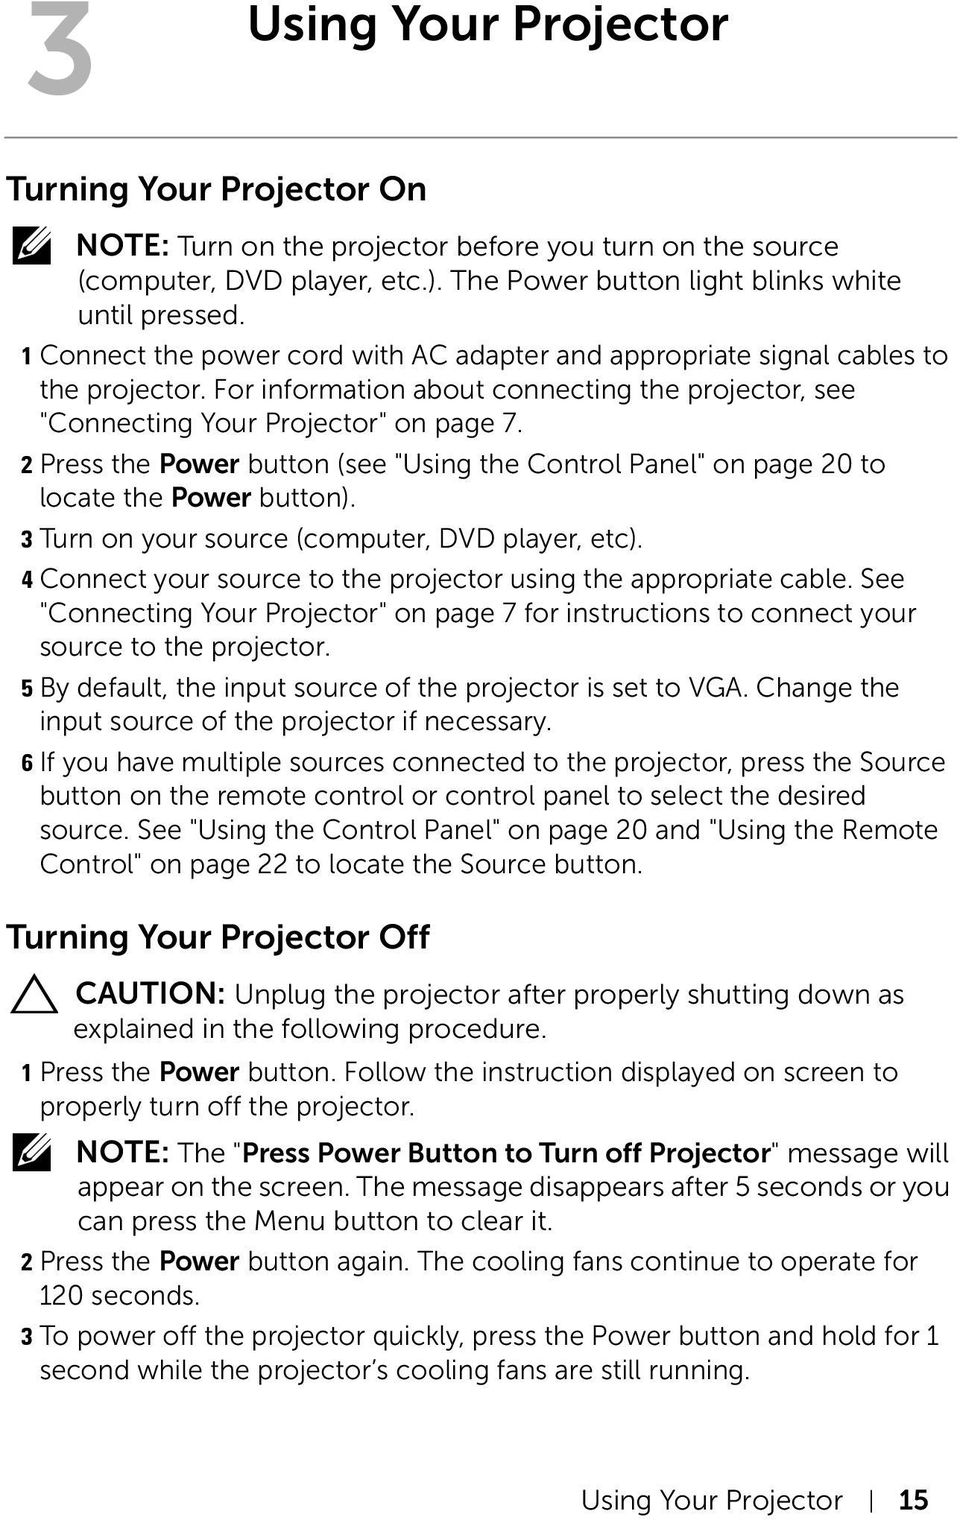 "2 Press the Power button (see ""Using the Control Panel"" on page 20 to locate the Power button). 3 Turn on your source (computer, DVD player, etc)."